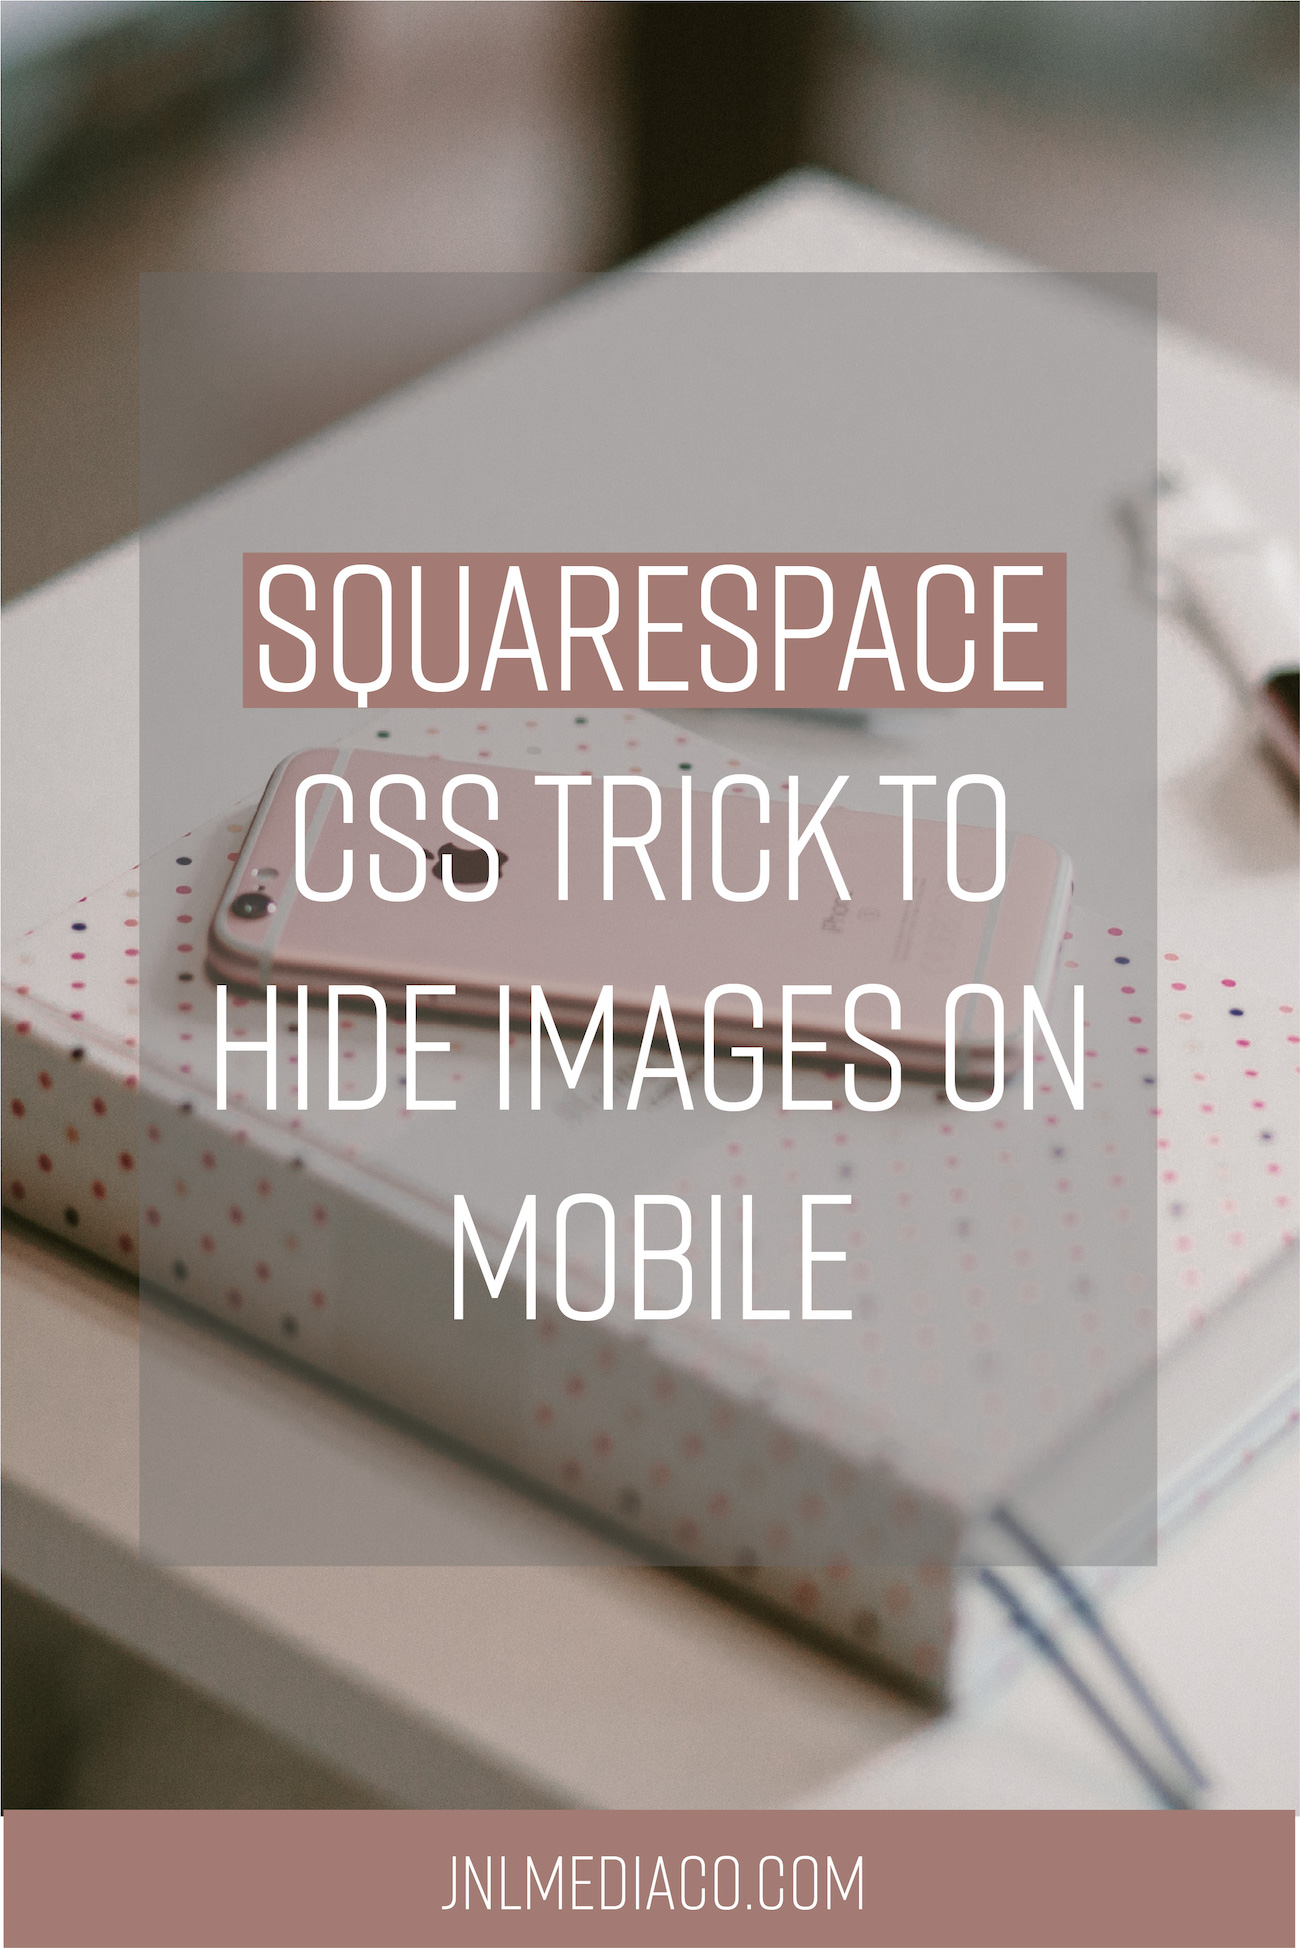 Fact is that most people nowadays visit your website on their phones only, since phones nowadays are basically mini pocket sized computers. Different sized screens mean that your website will look different across devices so it's important to make sure your website looks great on all devices. Learn how to hide images from mobile through Custom CSS & a chrome extension #squarespacetips